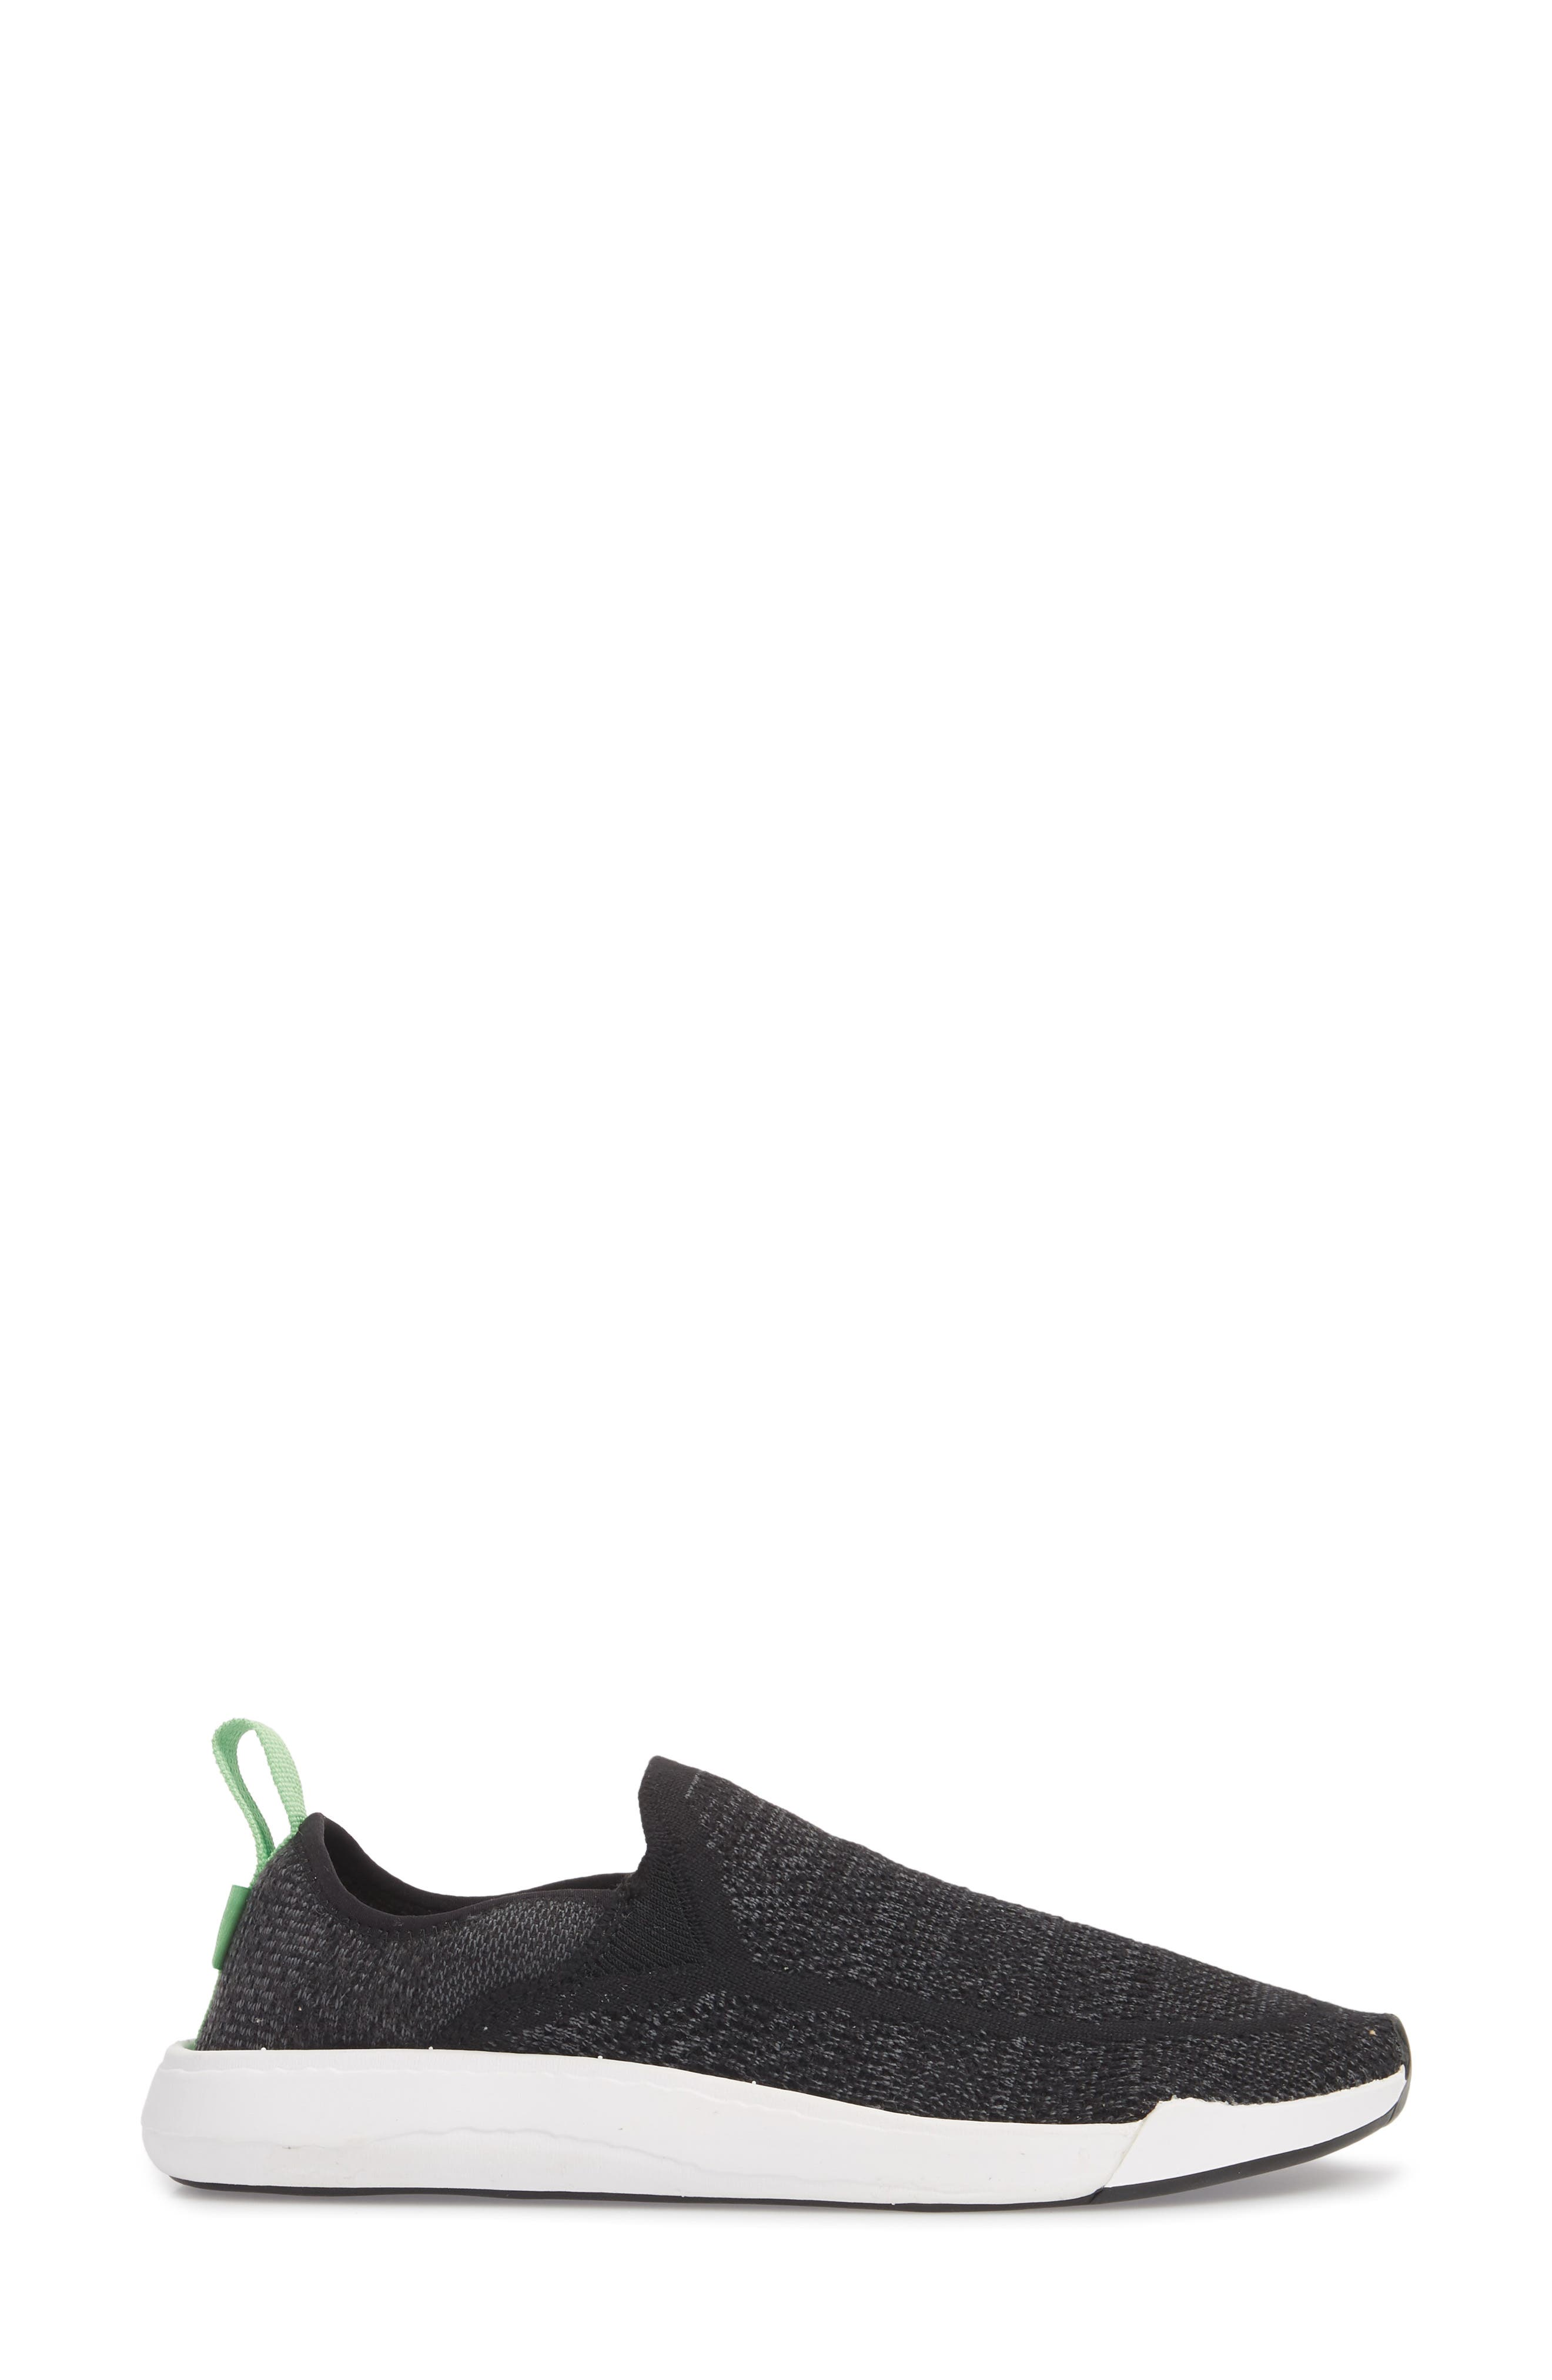 Chiba Quest Knit Slip-On Sneaker,                             Alternate thumbnail 3, color,                             BLACK